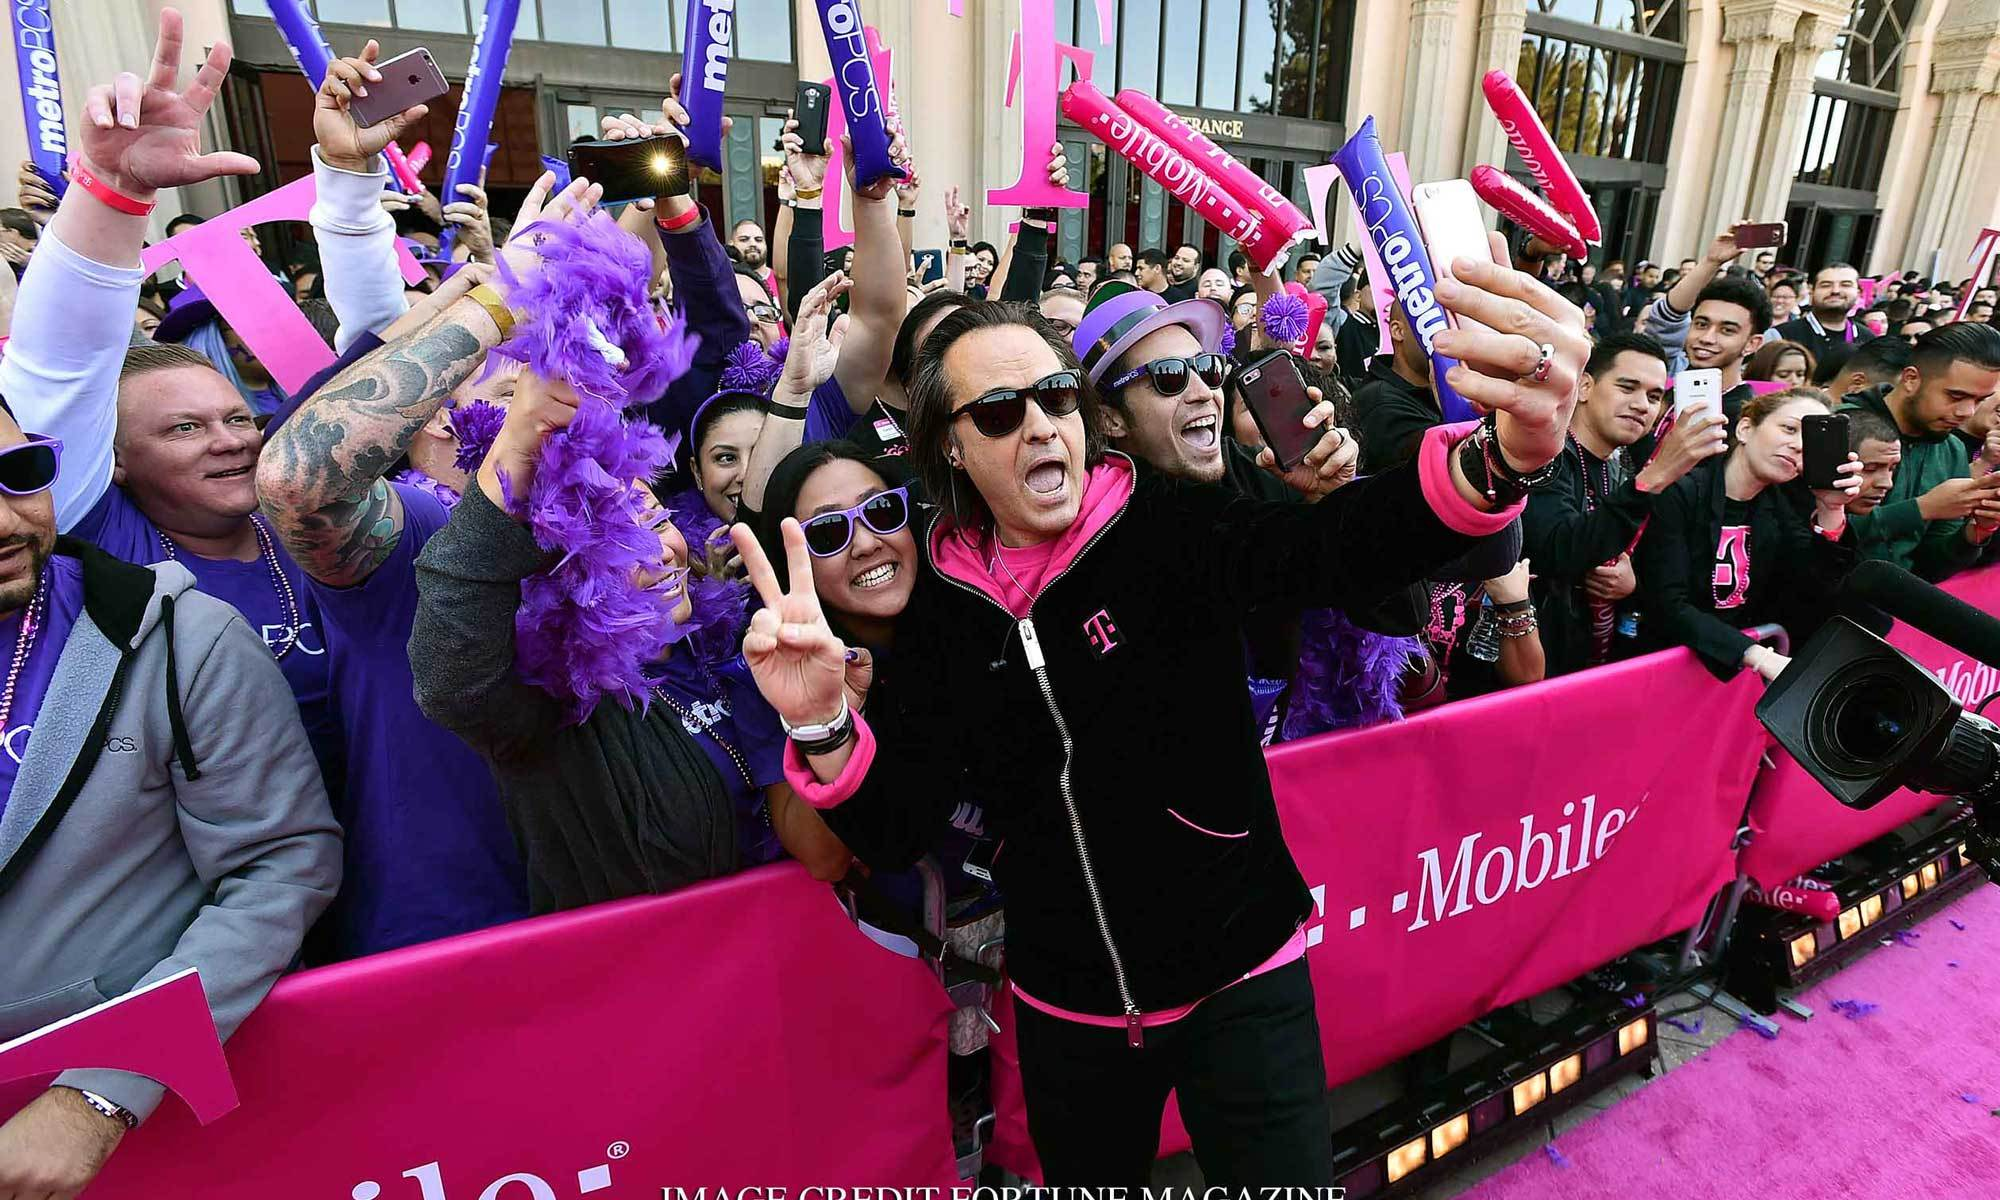 tmobile-social media marketing-John Legere